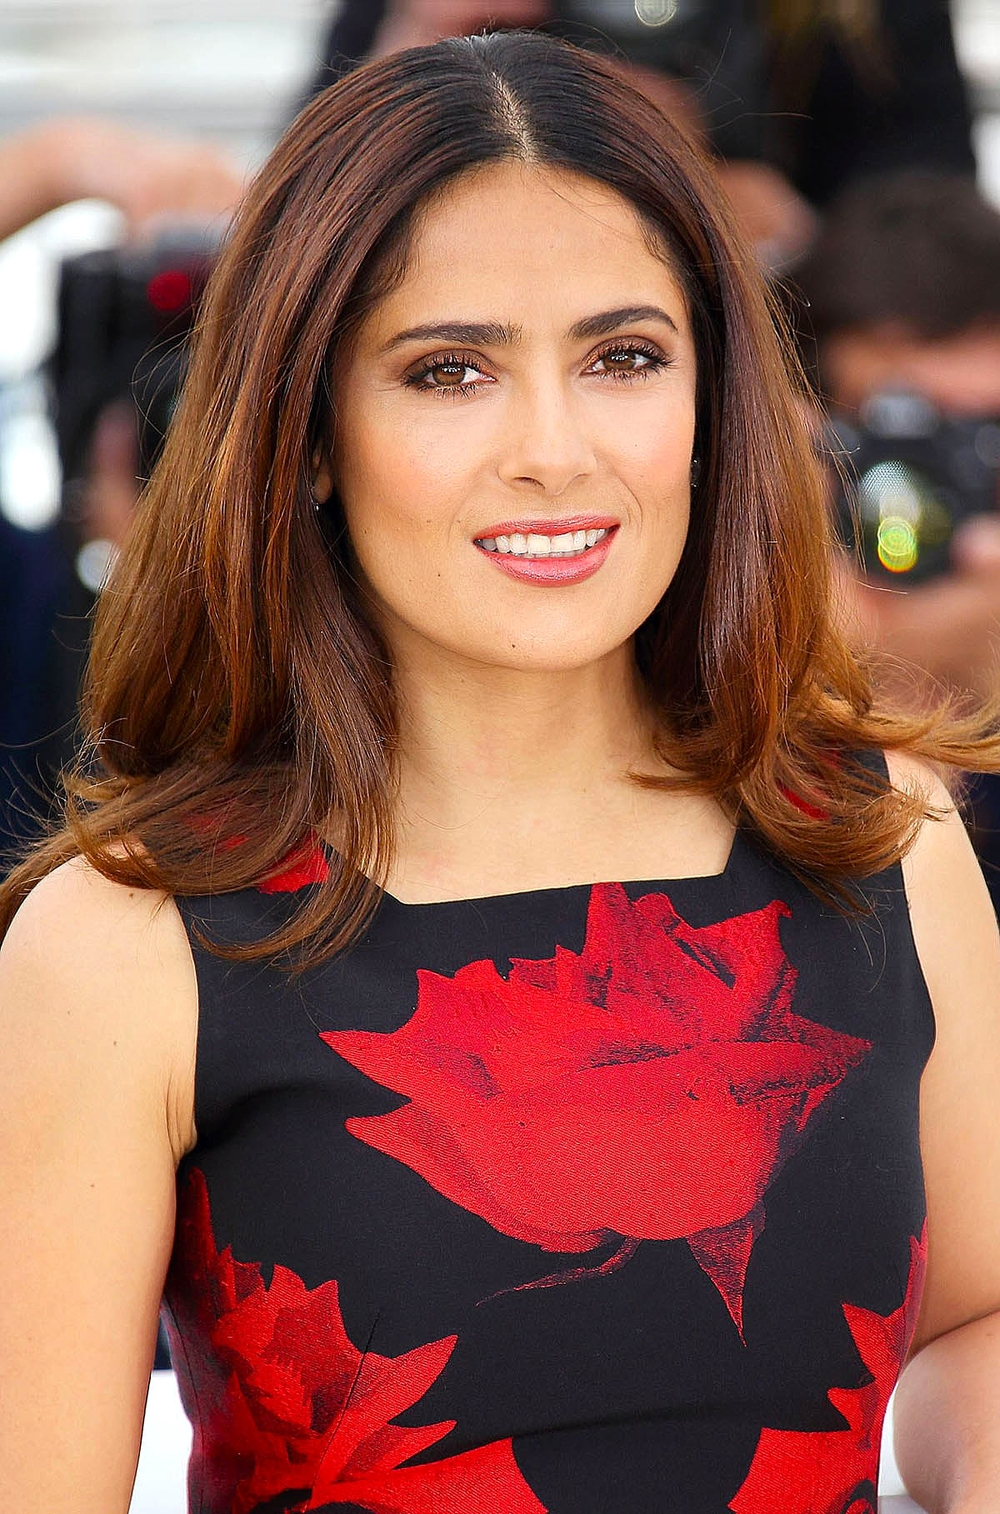 Salma Hayek at the photocall for 'Tale Of Tales'                Photo by Getty